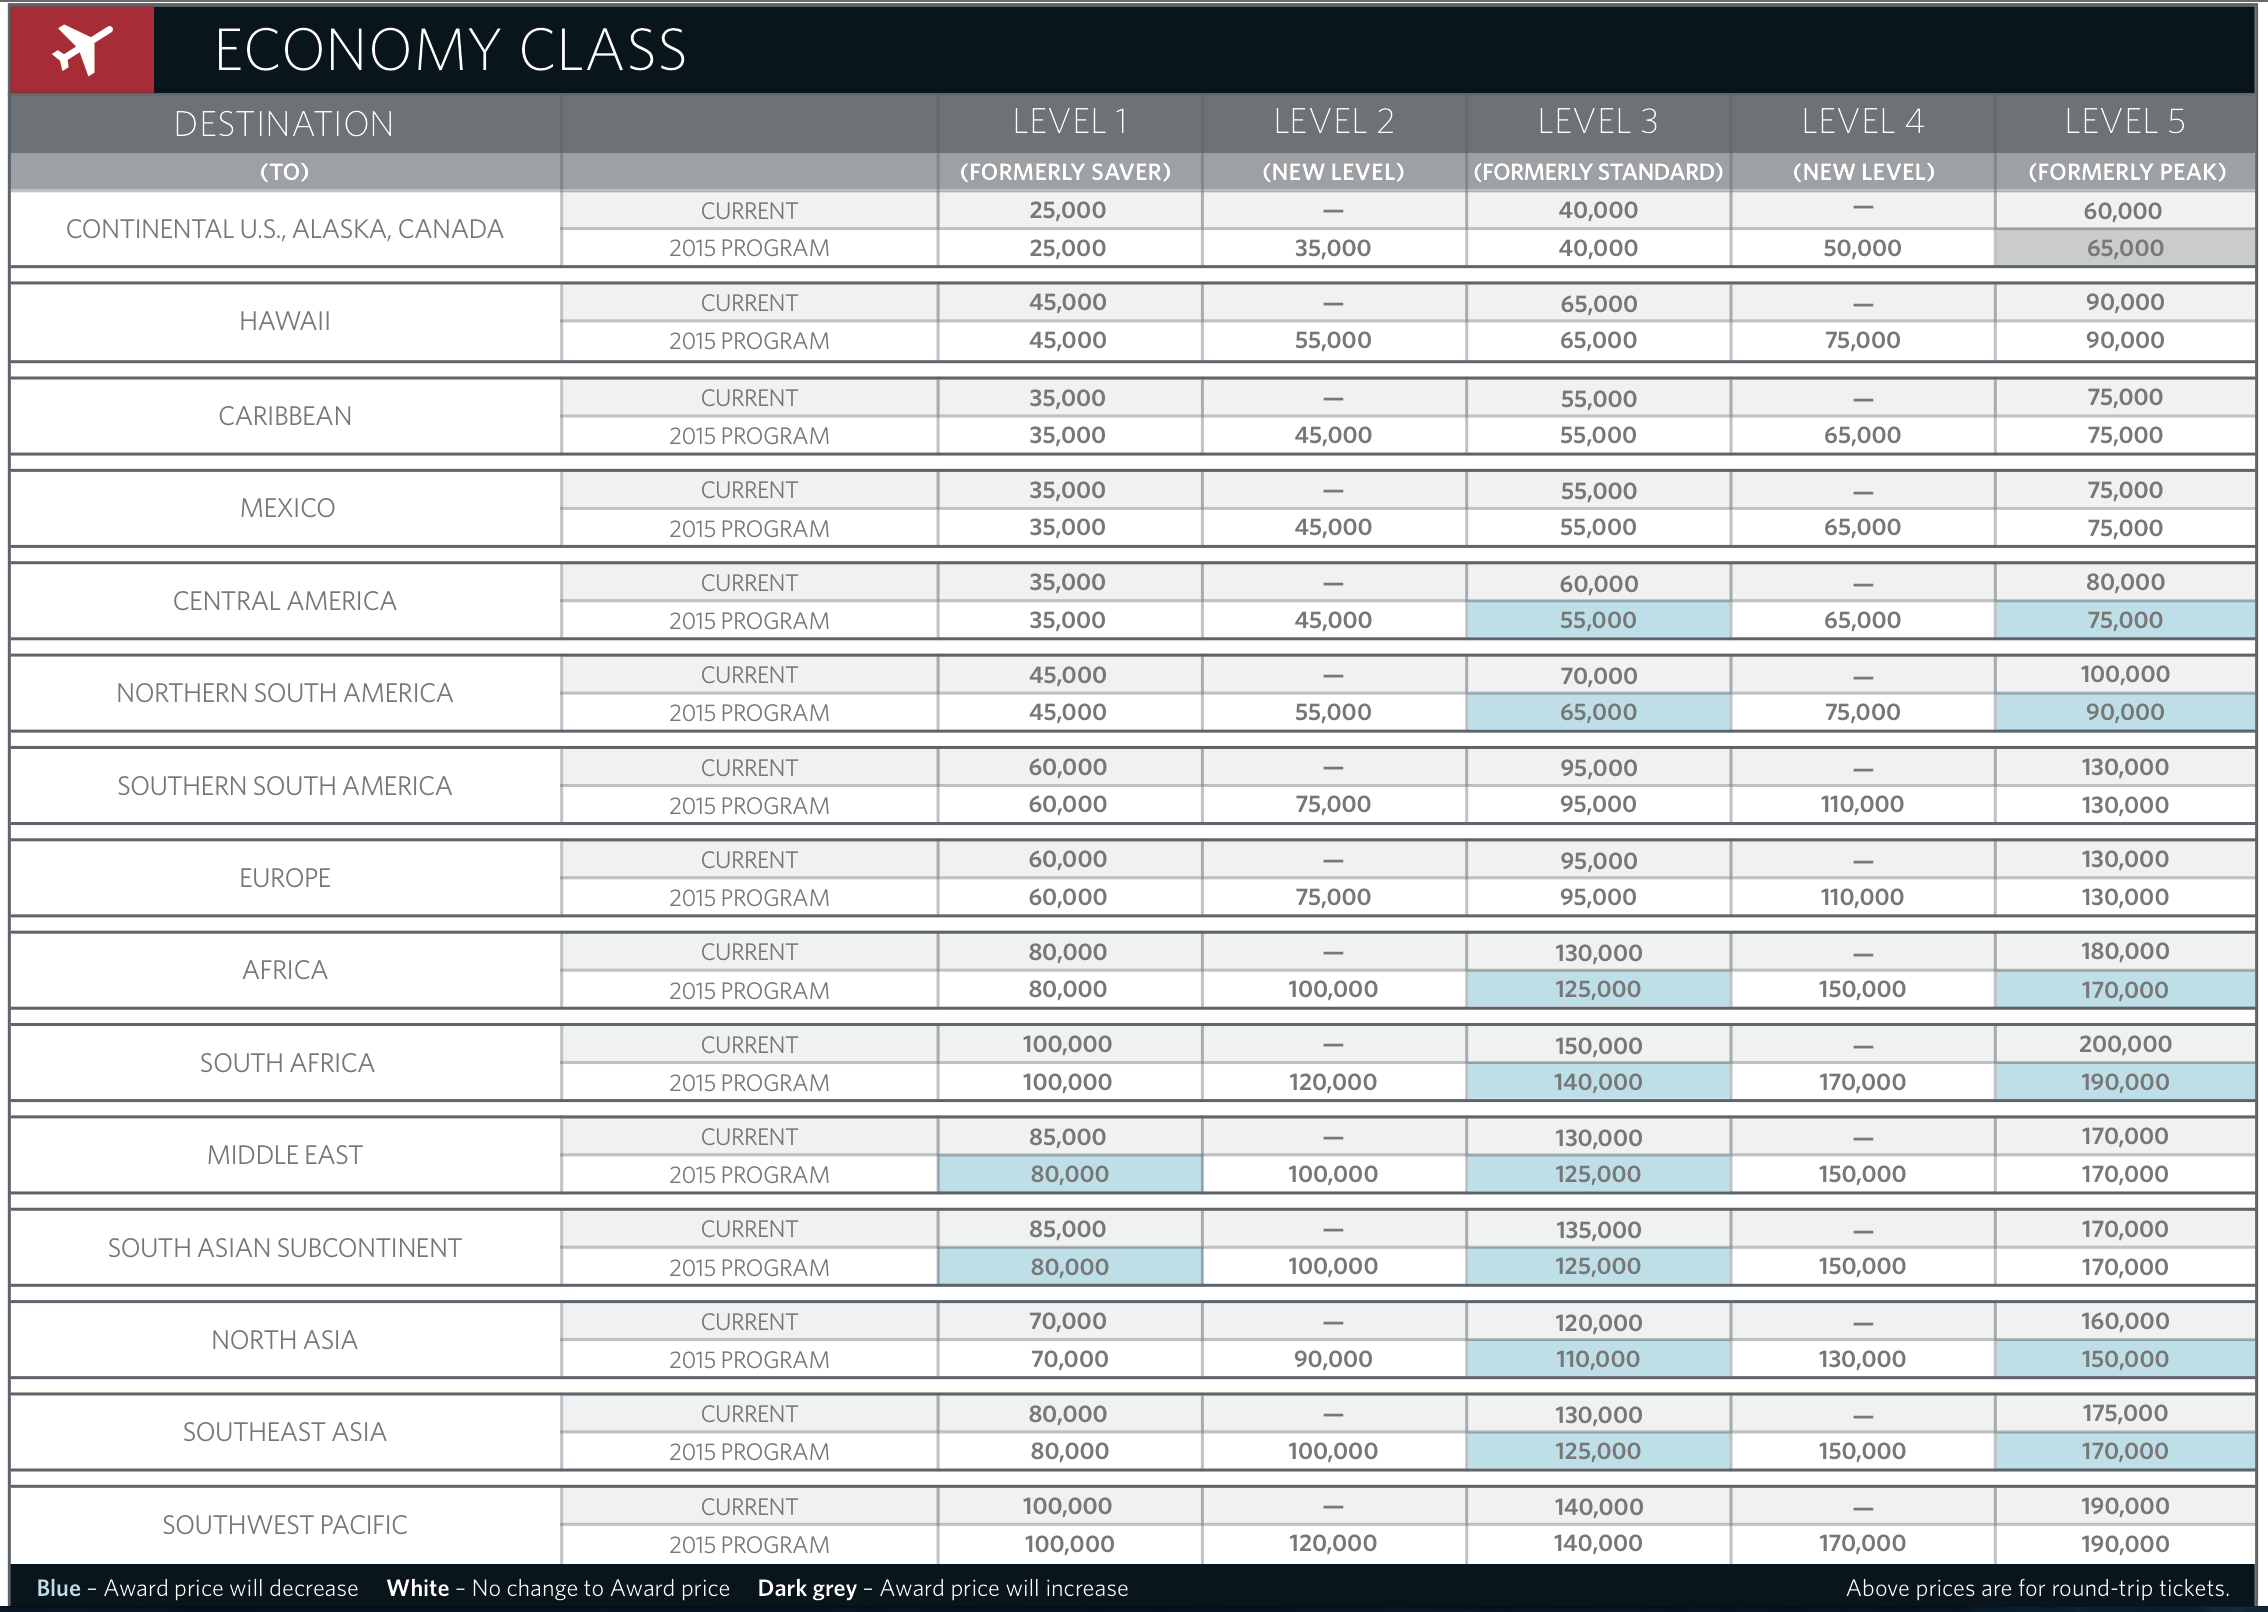 Click on the economy class SkyMiles award chart for an enlarged view. Source: Delta Air Lines.